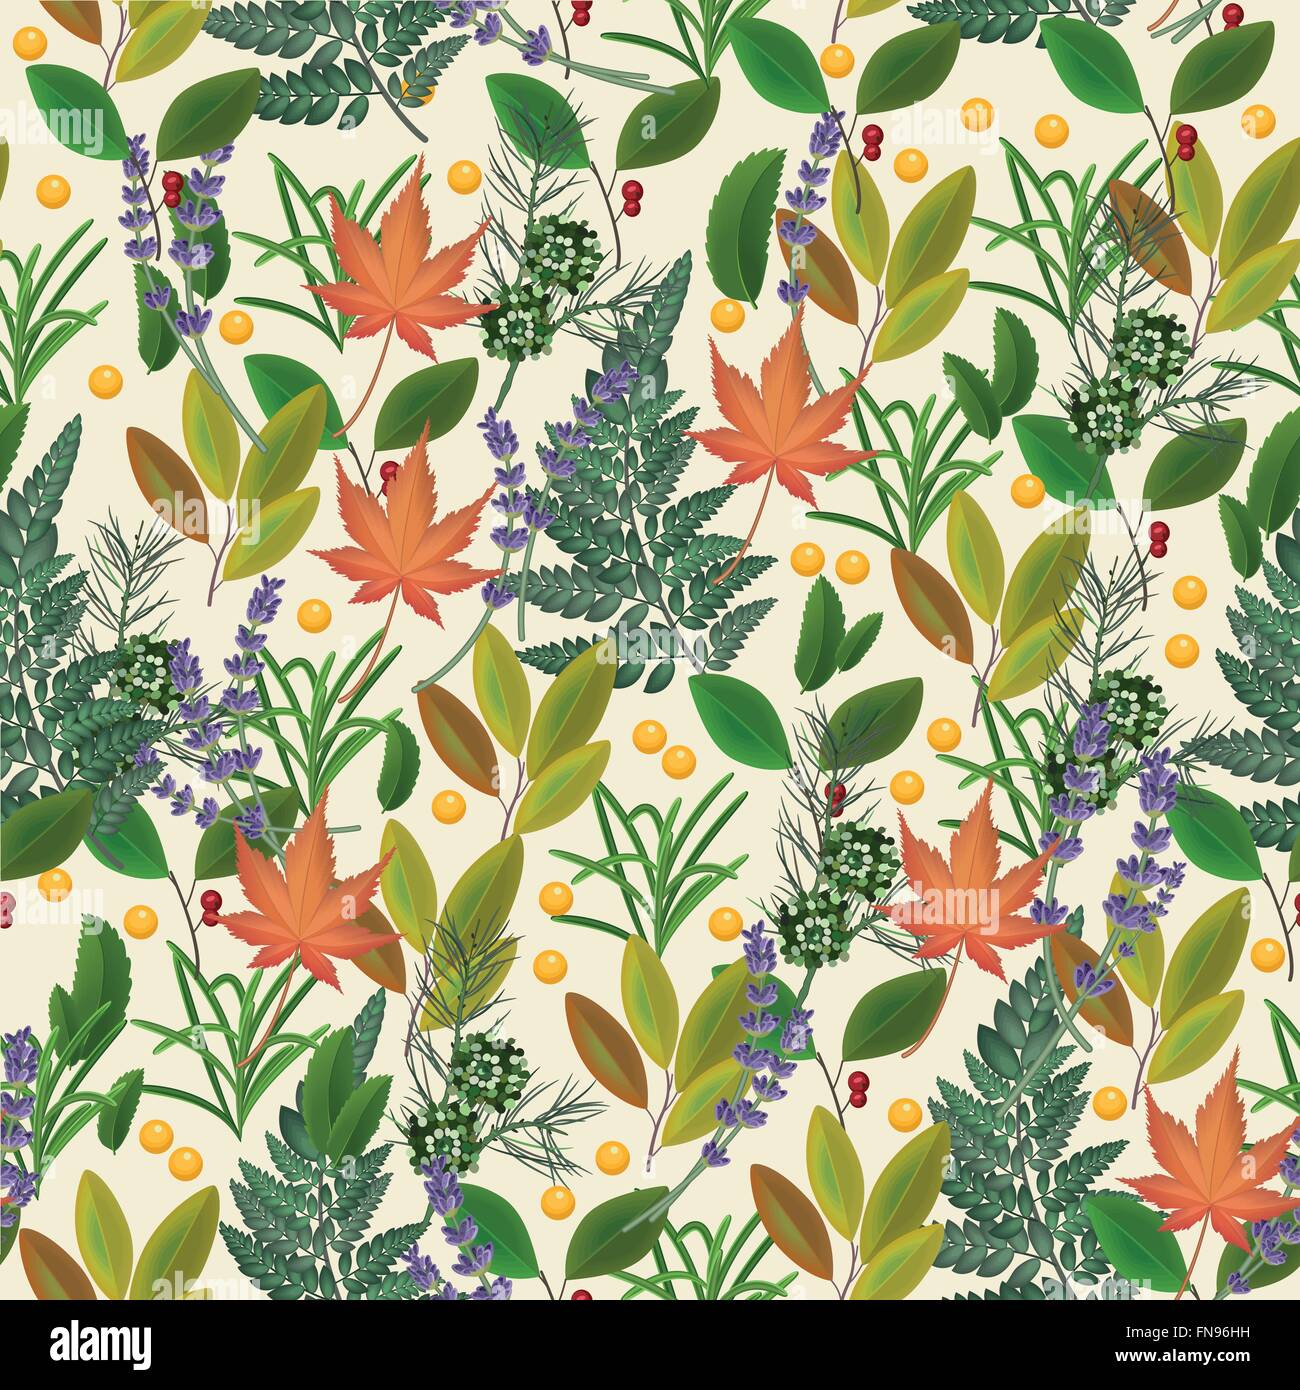 Herbal Wallpaper Seamless Pattern With Fresh Leaves Herbal Background With Plants